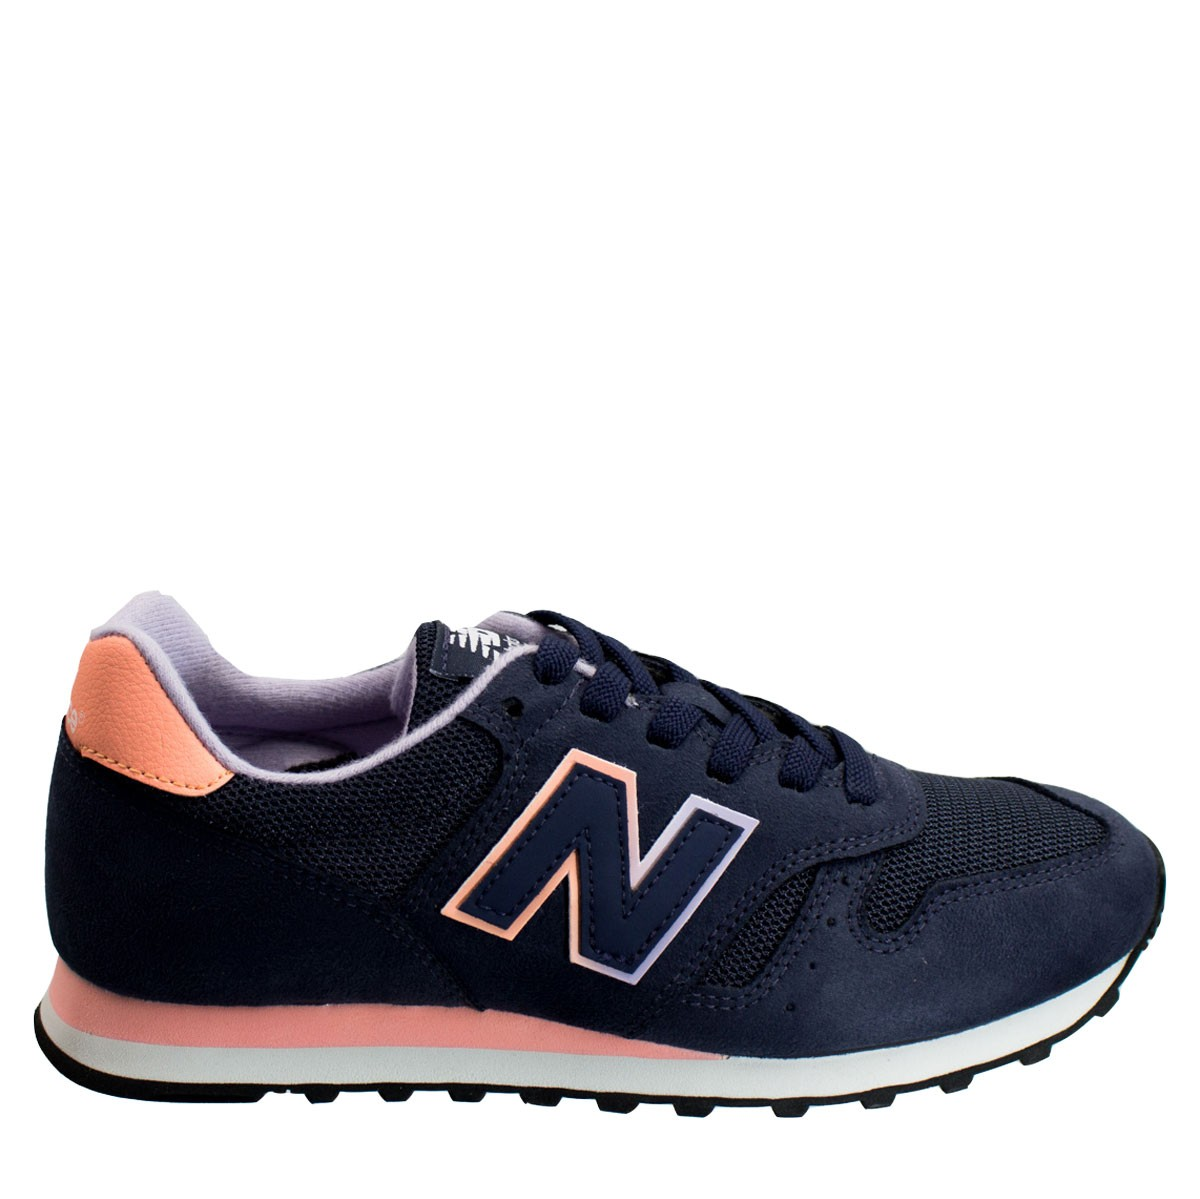 45b8c78c372 ... authentic tênis feminino new balance 373 retrô running 0314b 8f17f